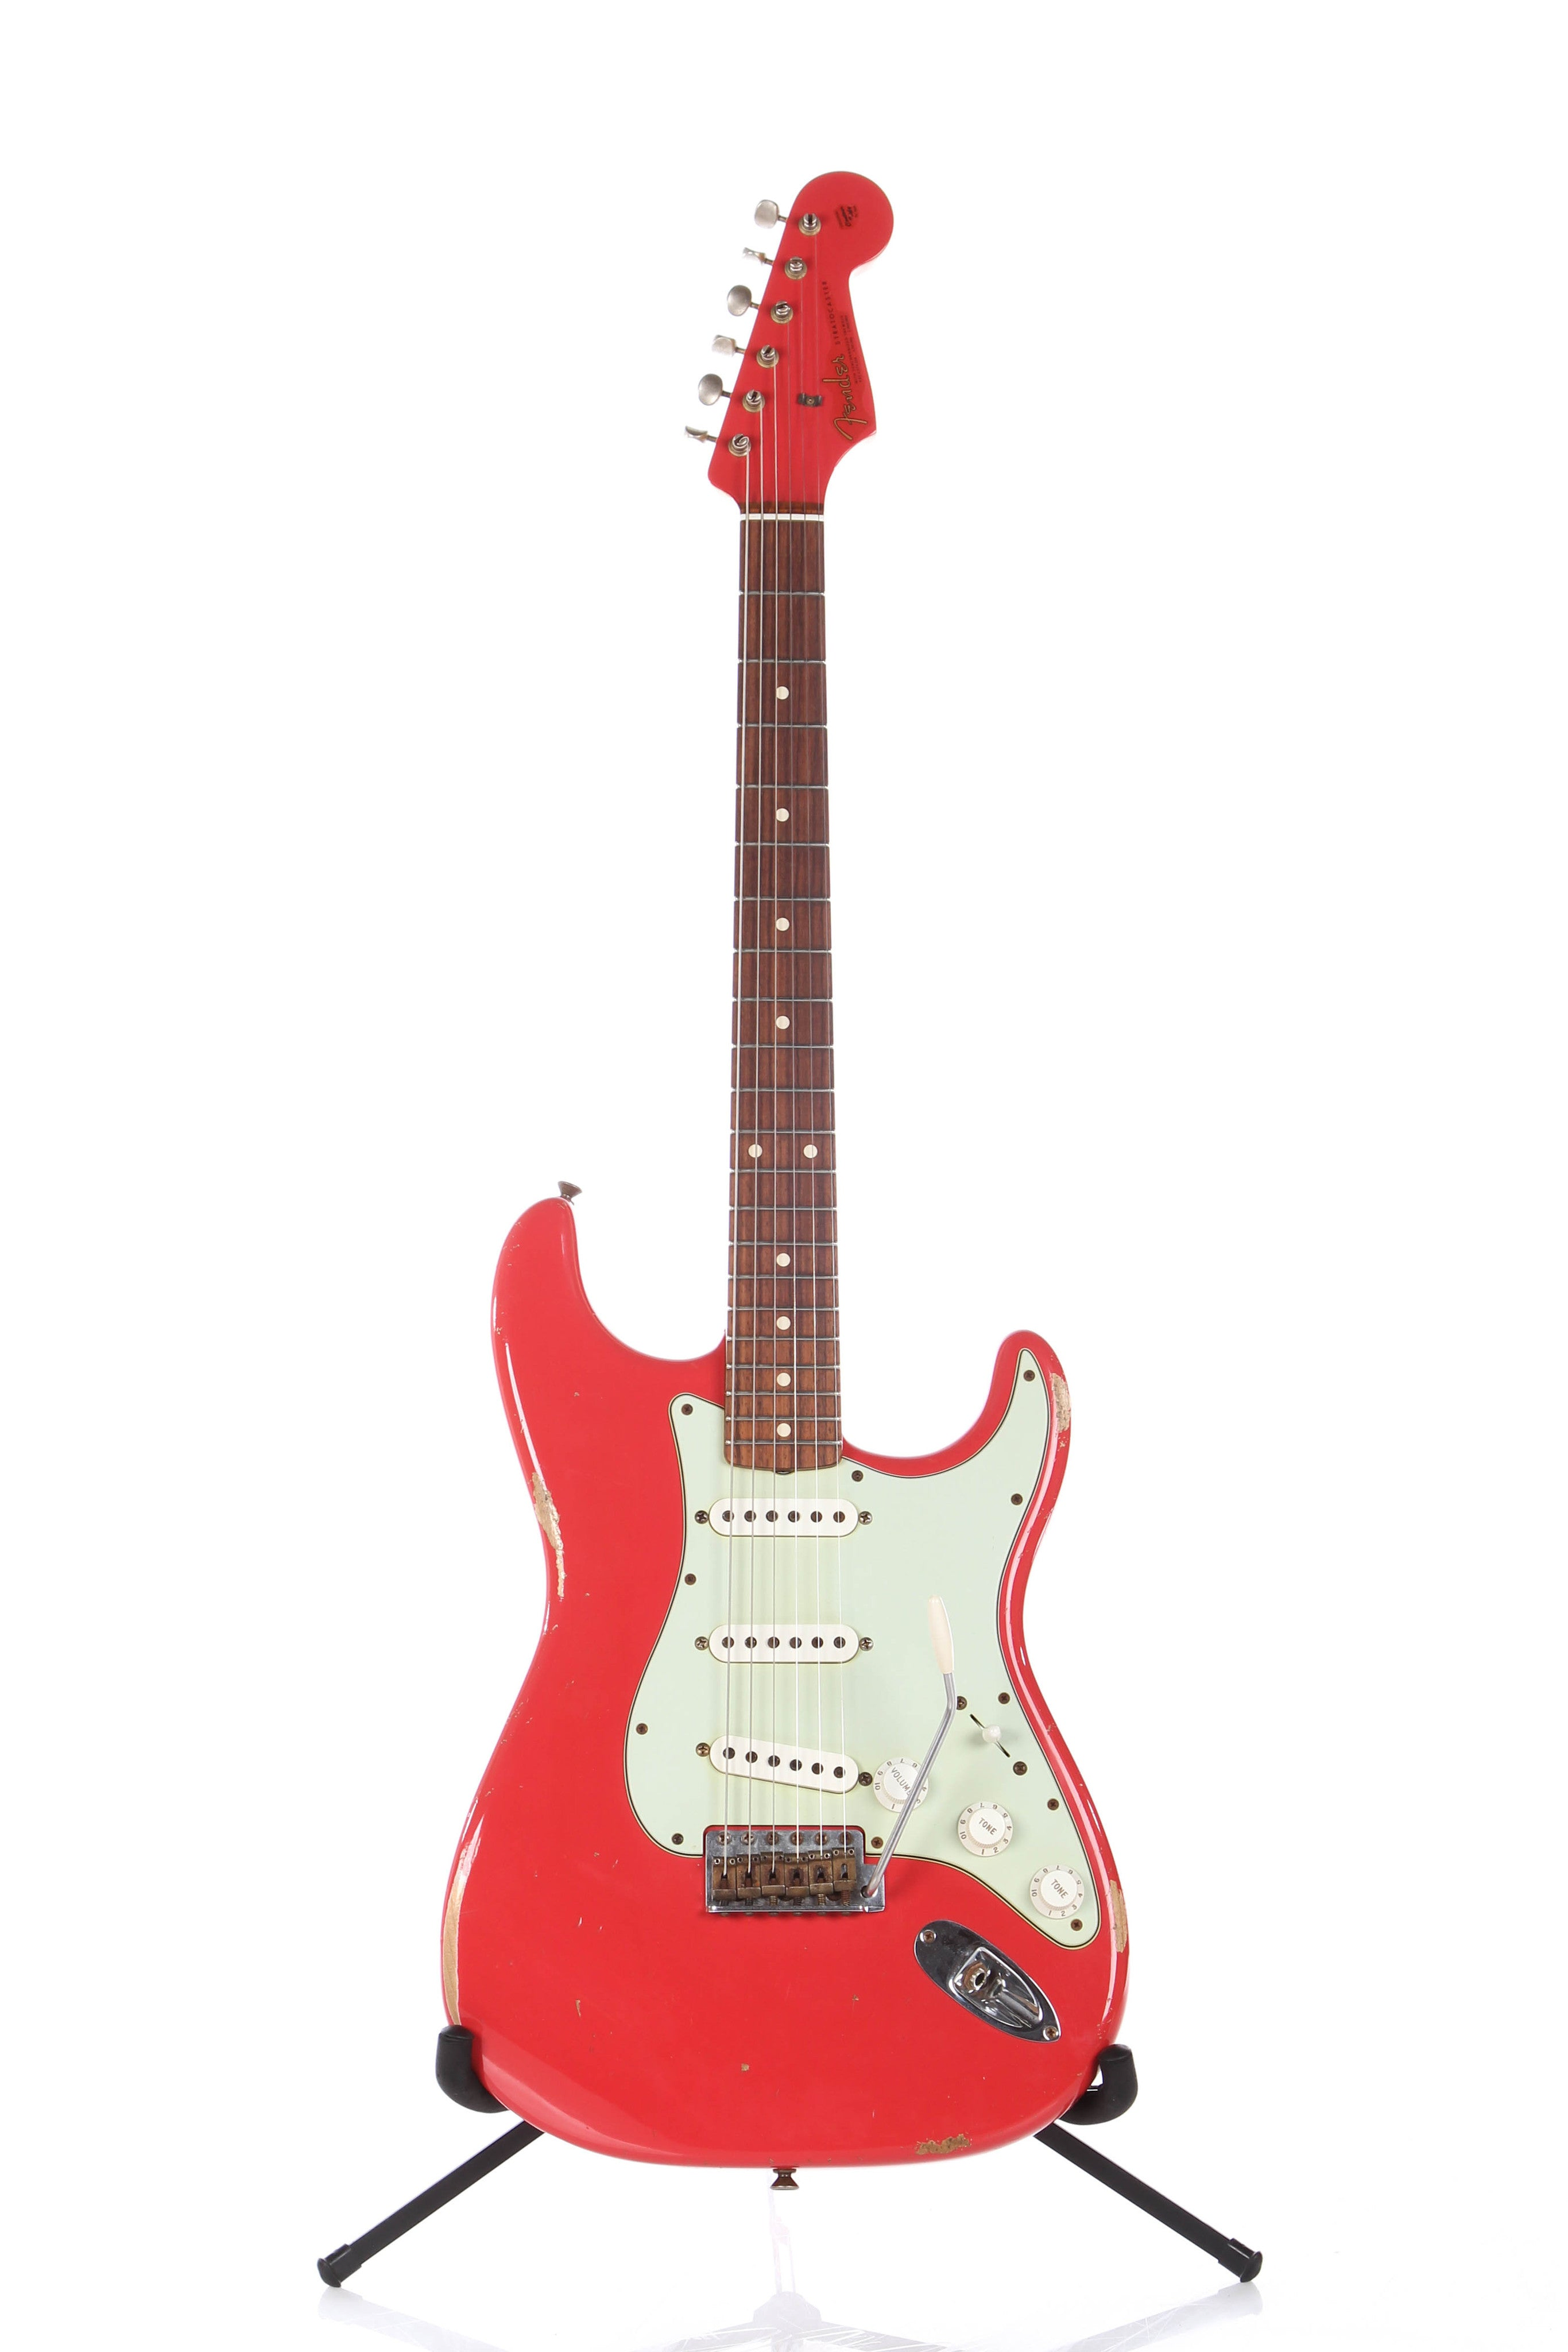 2014 fender custom shop 1960 relic stratocaster fiesta red matching he guitar chimp. Black Bedroom Furniture Sets. Home Design Ideas